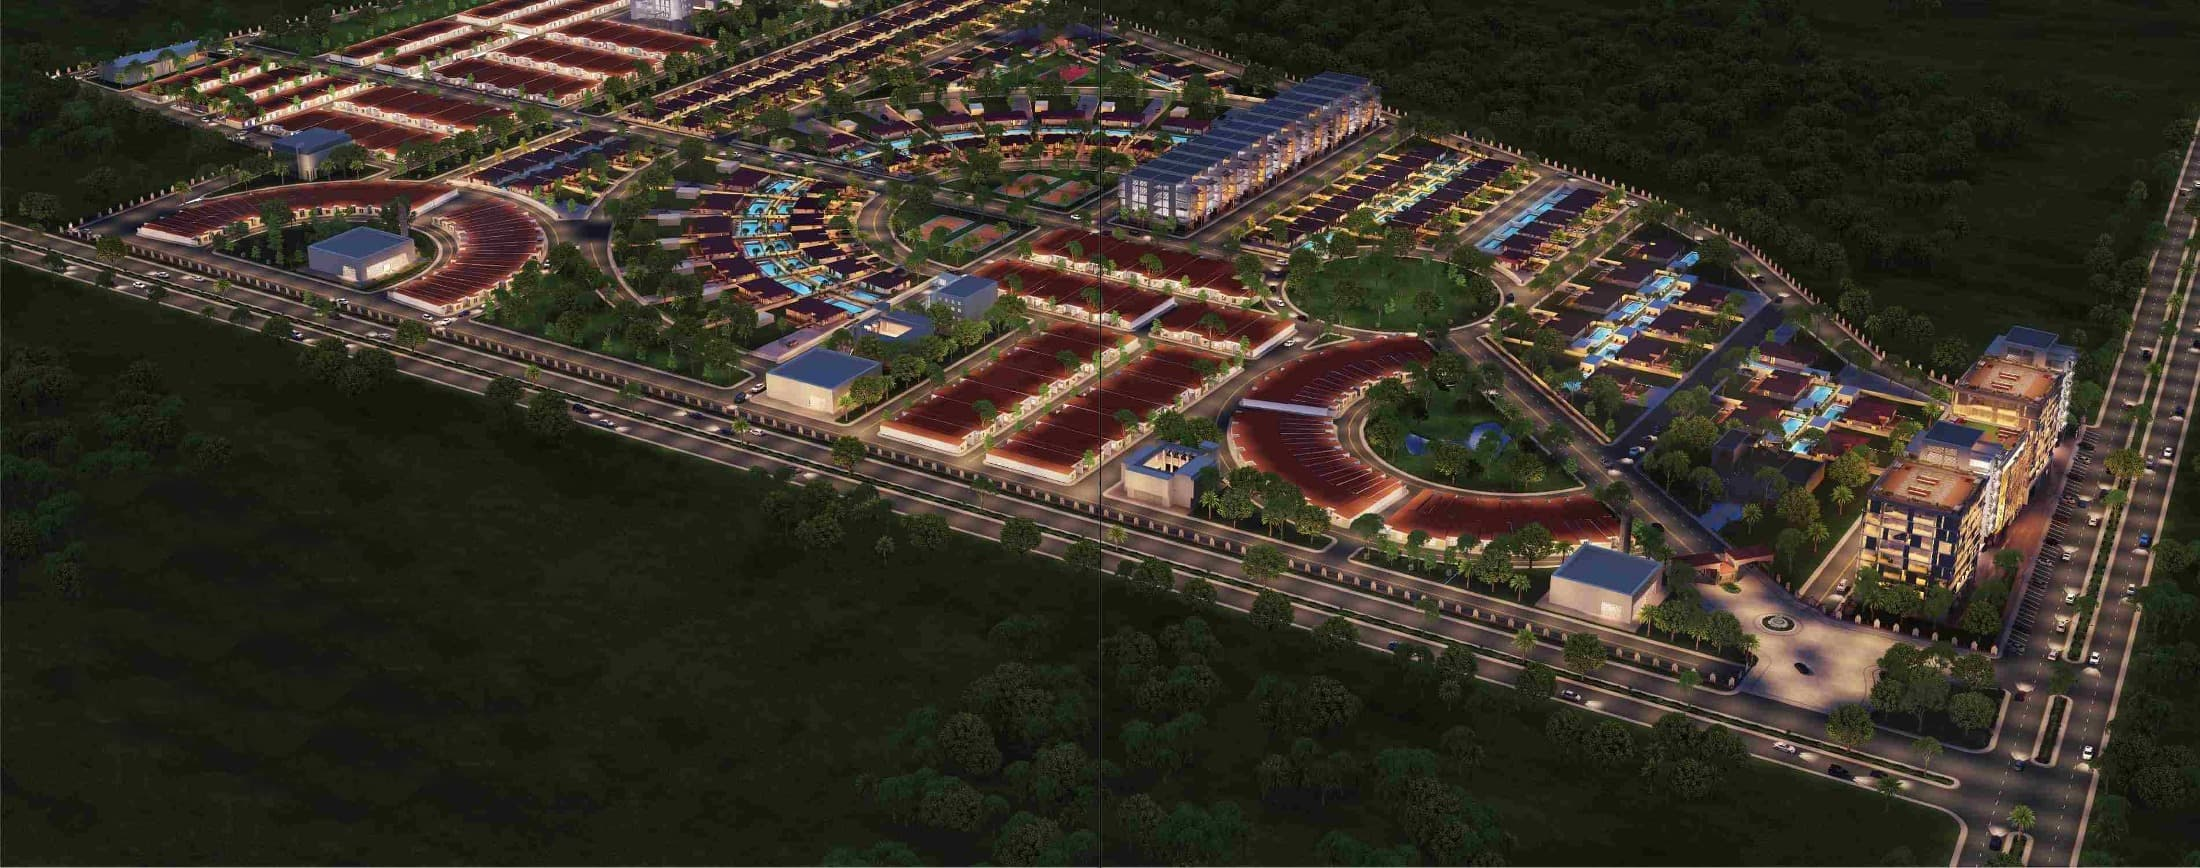 Aerial view of The Gardens Residence - Residential plots and villas on M9 Motorway